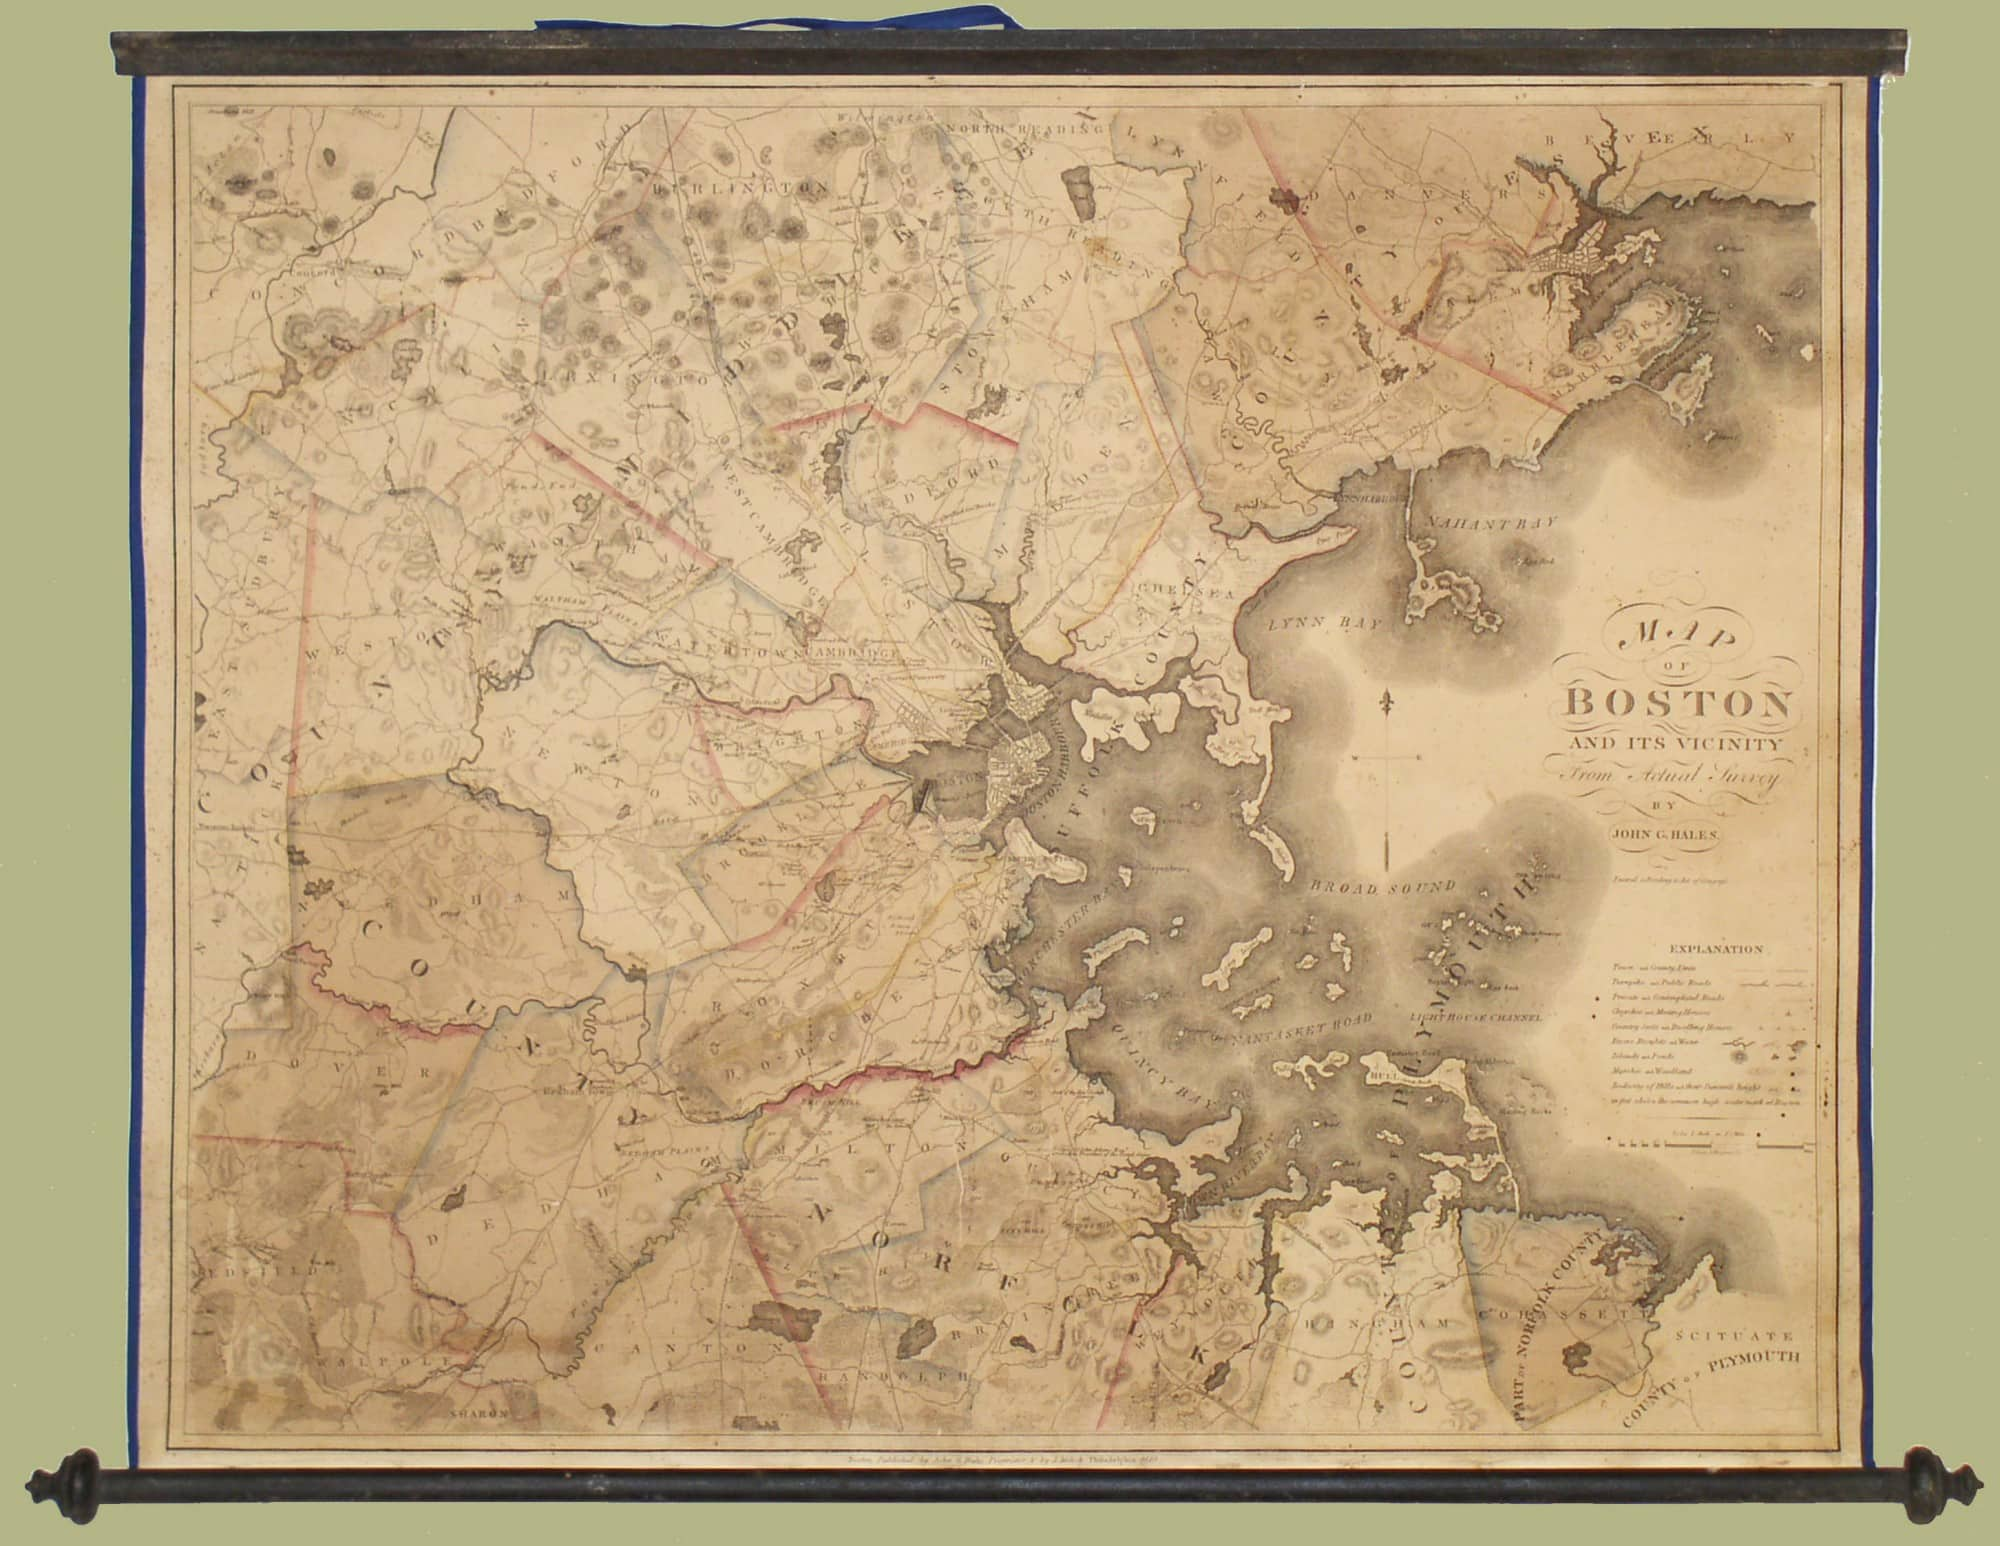 Superb Map Of The Boston Area By John G Hales Rare  Antique Maps - Map of boston vicinity